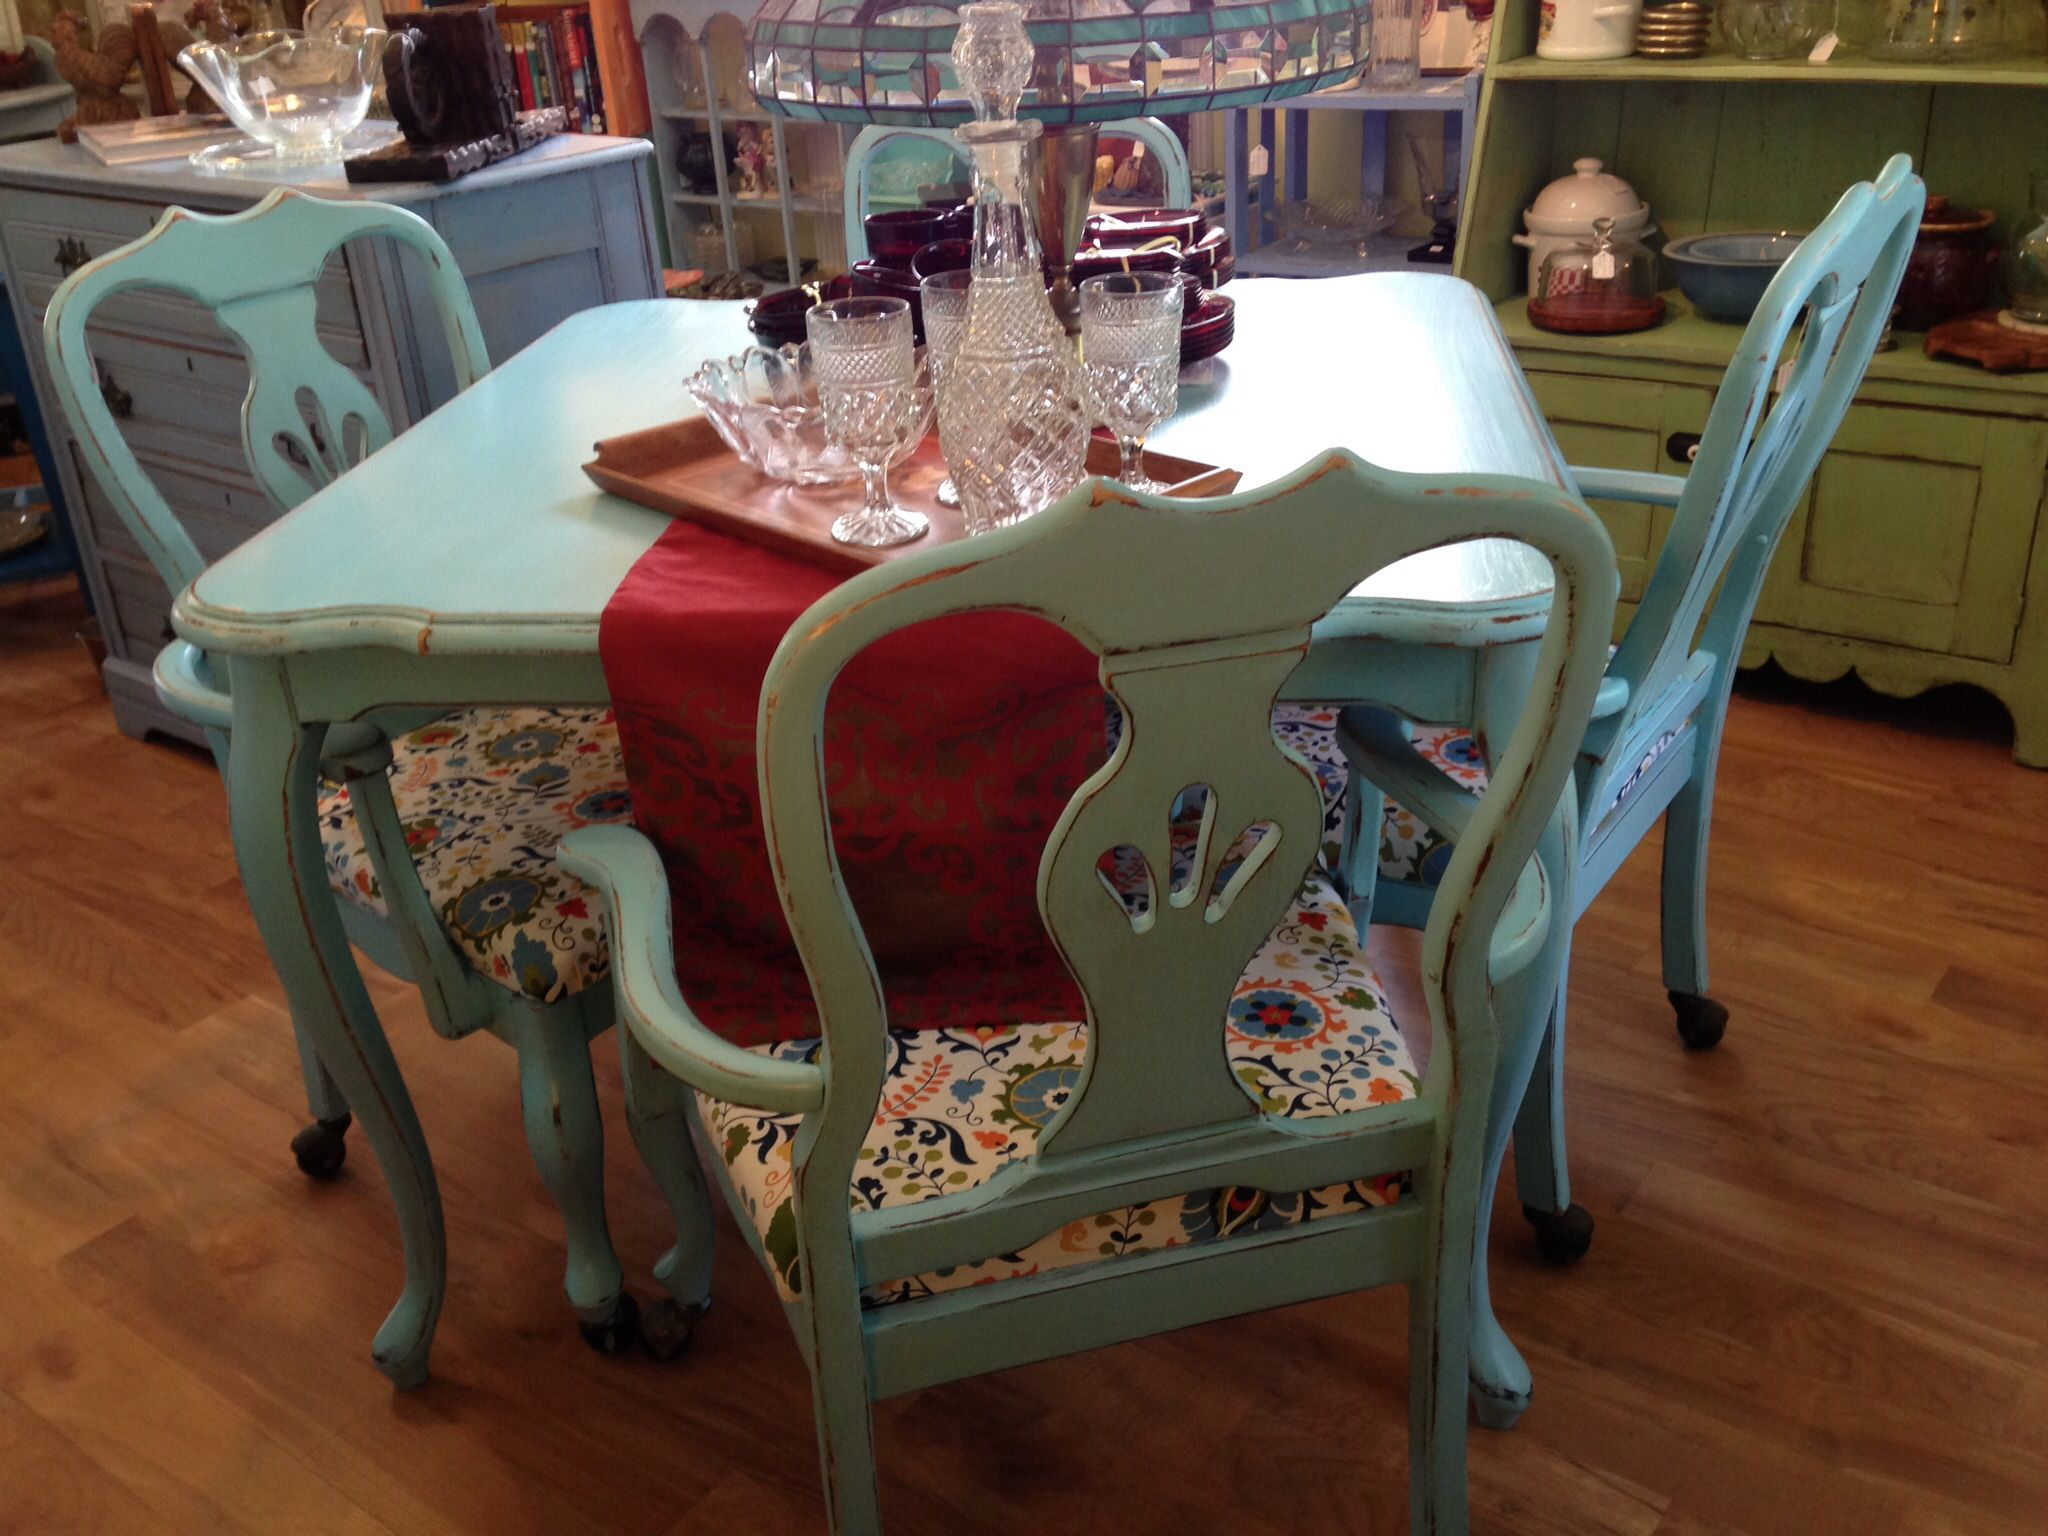 Diy Shabby Chic Dining Table And Chairs Shabby Chic Dining Table With 4 Chair Flea Market Finds